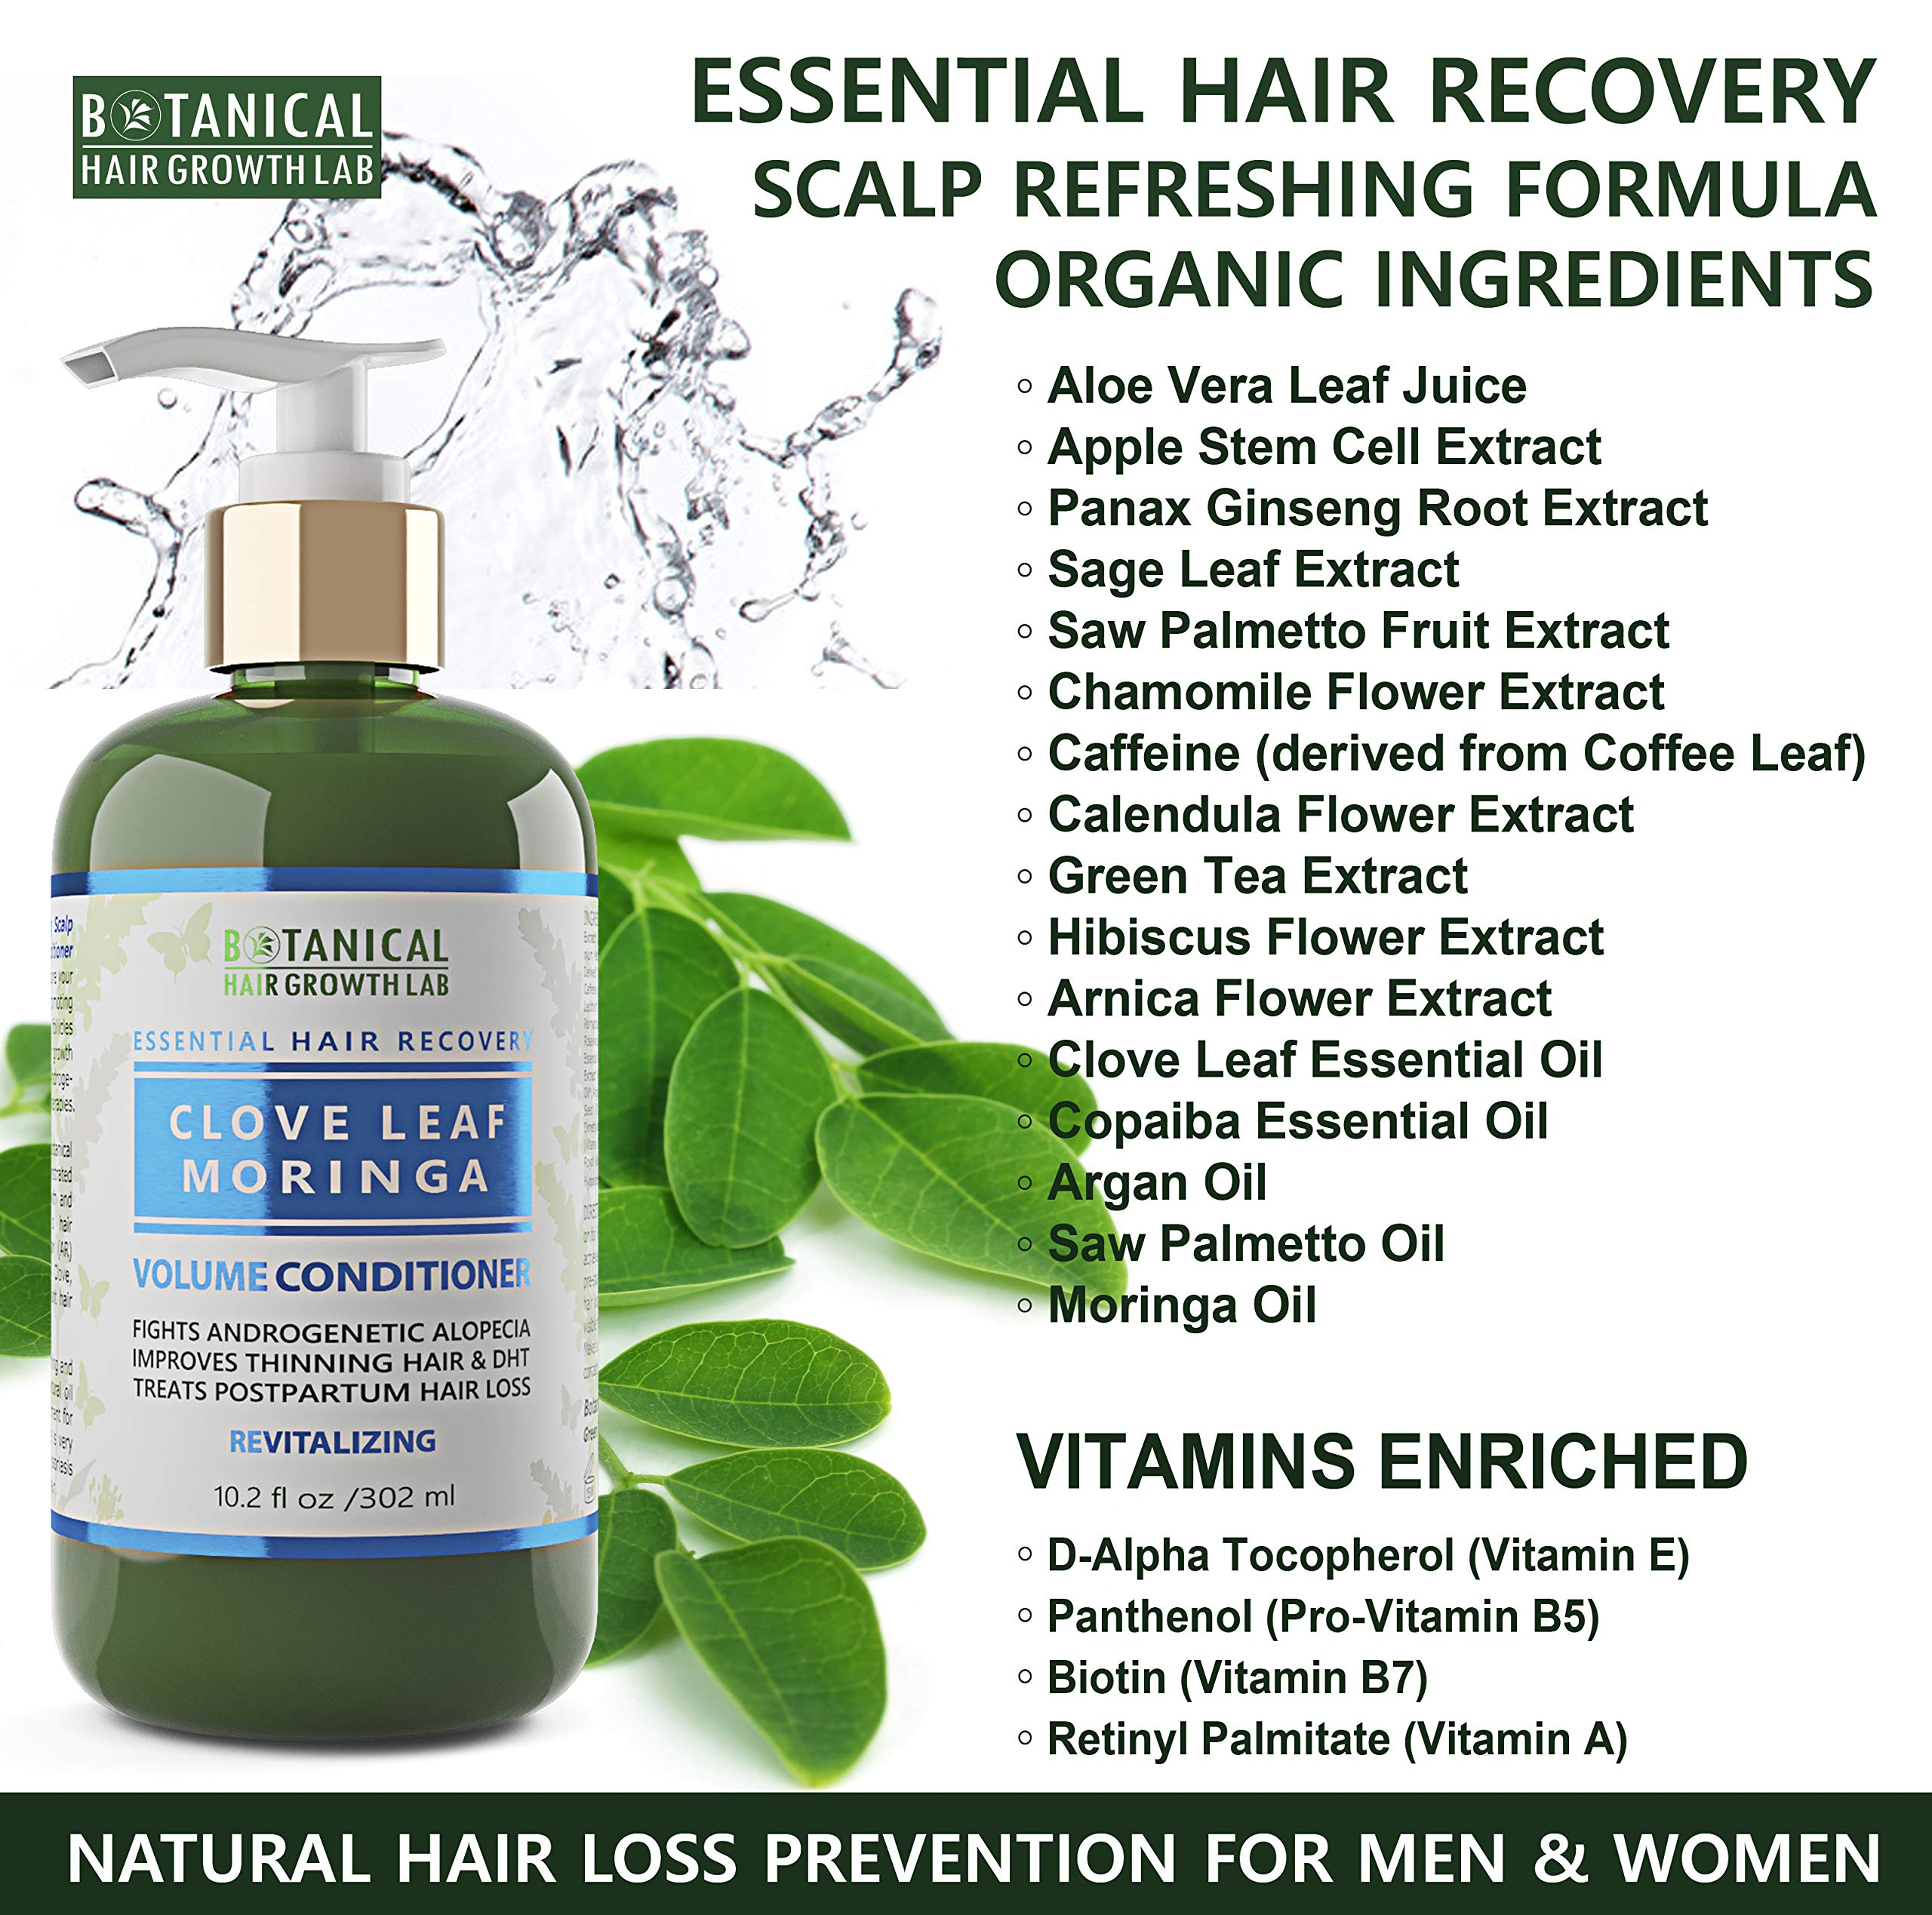 Botanical Hair Growth Lab Biotin Conditioner - Clove Leaf Moringa Formula - Anti Hair Loss Complex - DHT Blockers, Sulfate Free, Natural Ingredients for Men & Women by BOTANICAL HAIR GROWTH LAB (Image #4)